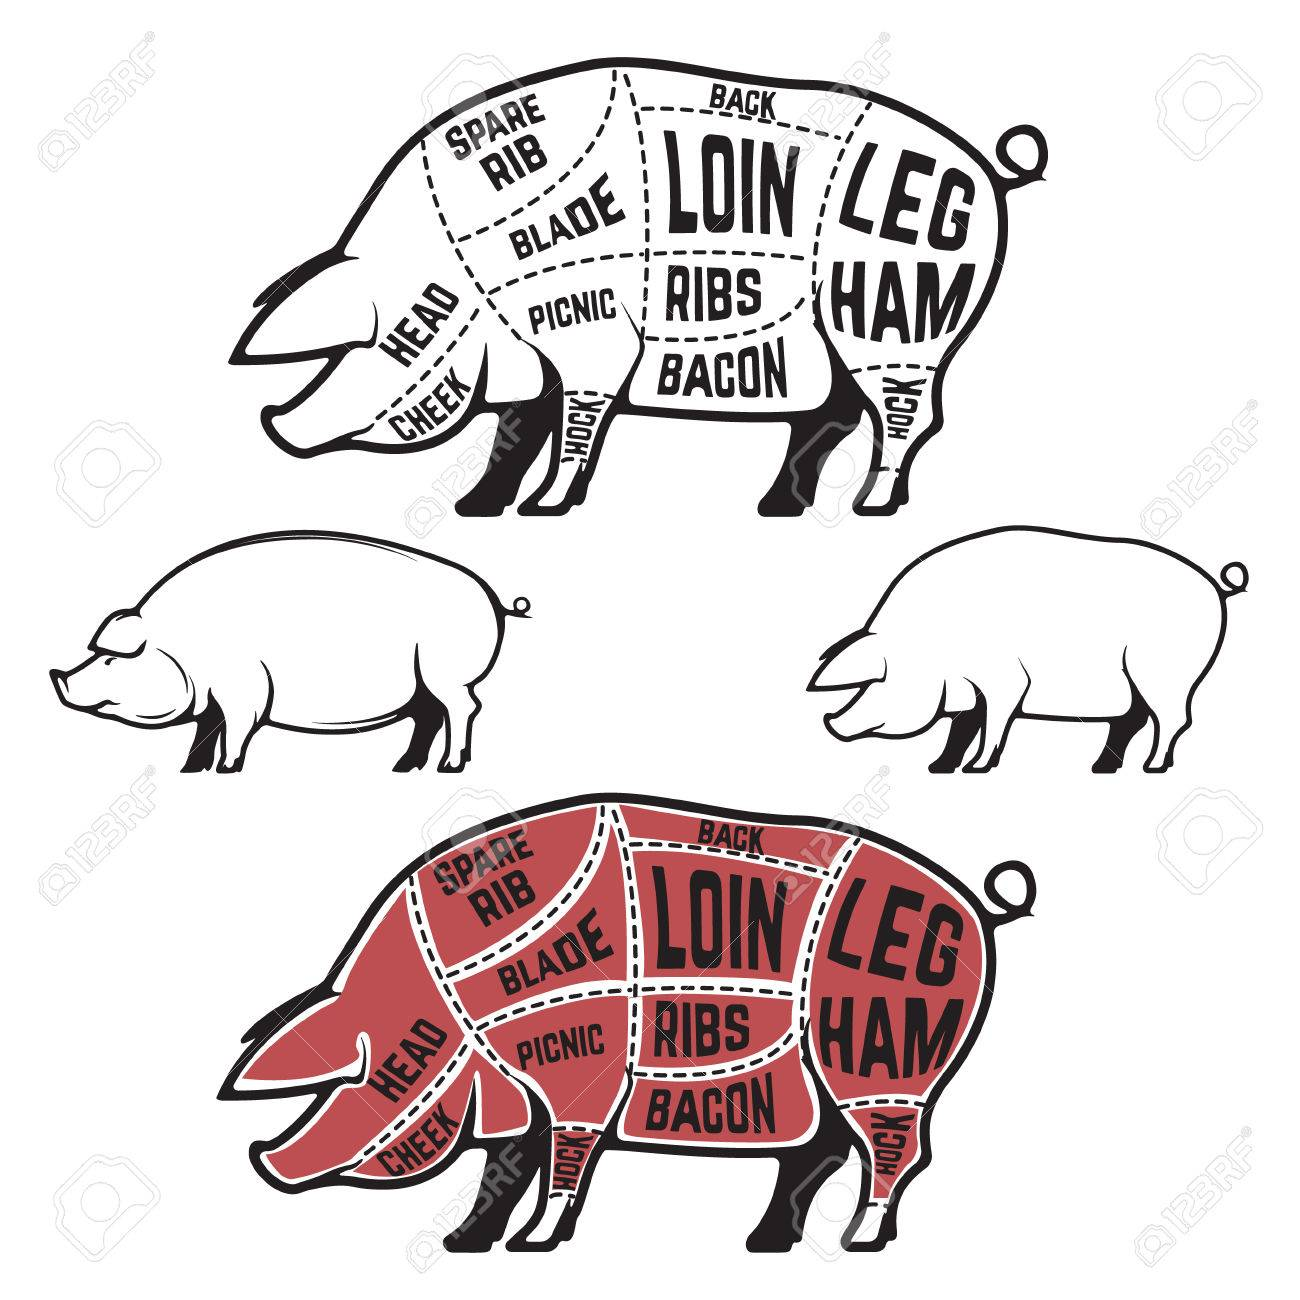 hight resolution of butcher diagram scheme and guide pork cuts set of pig silhouettes isolated on